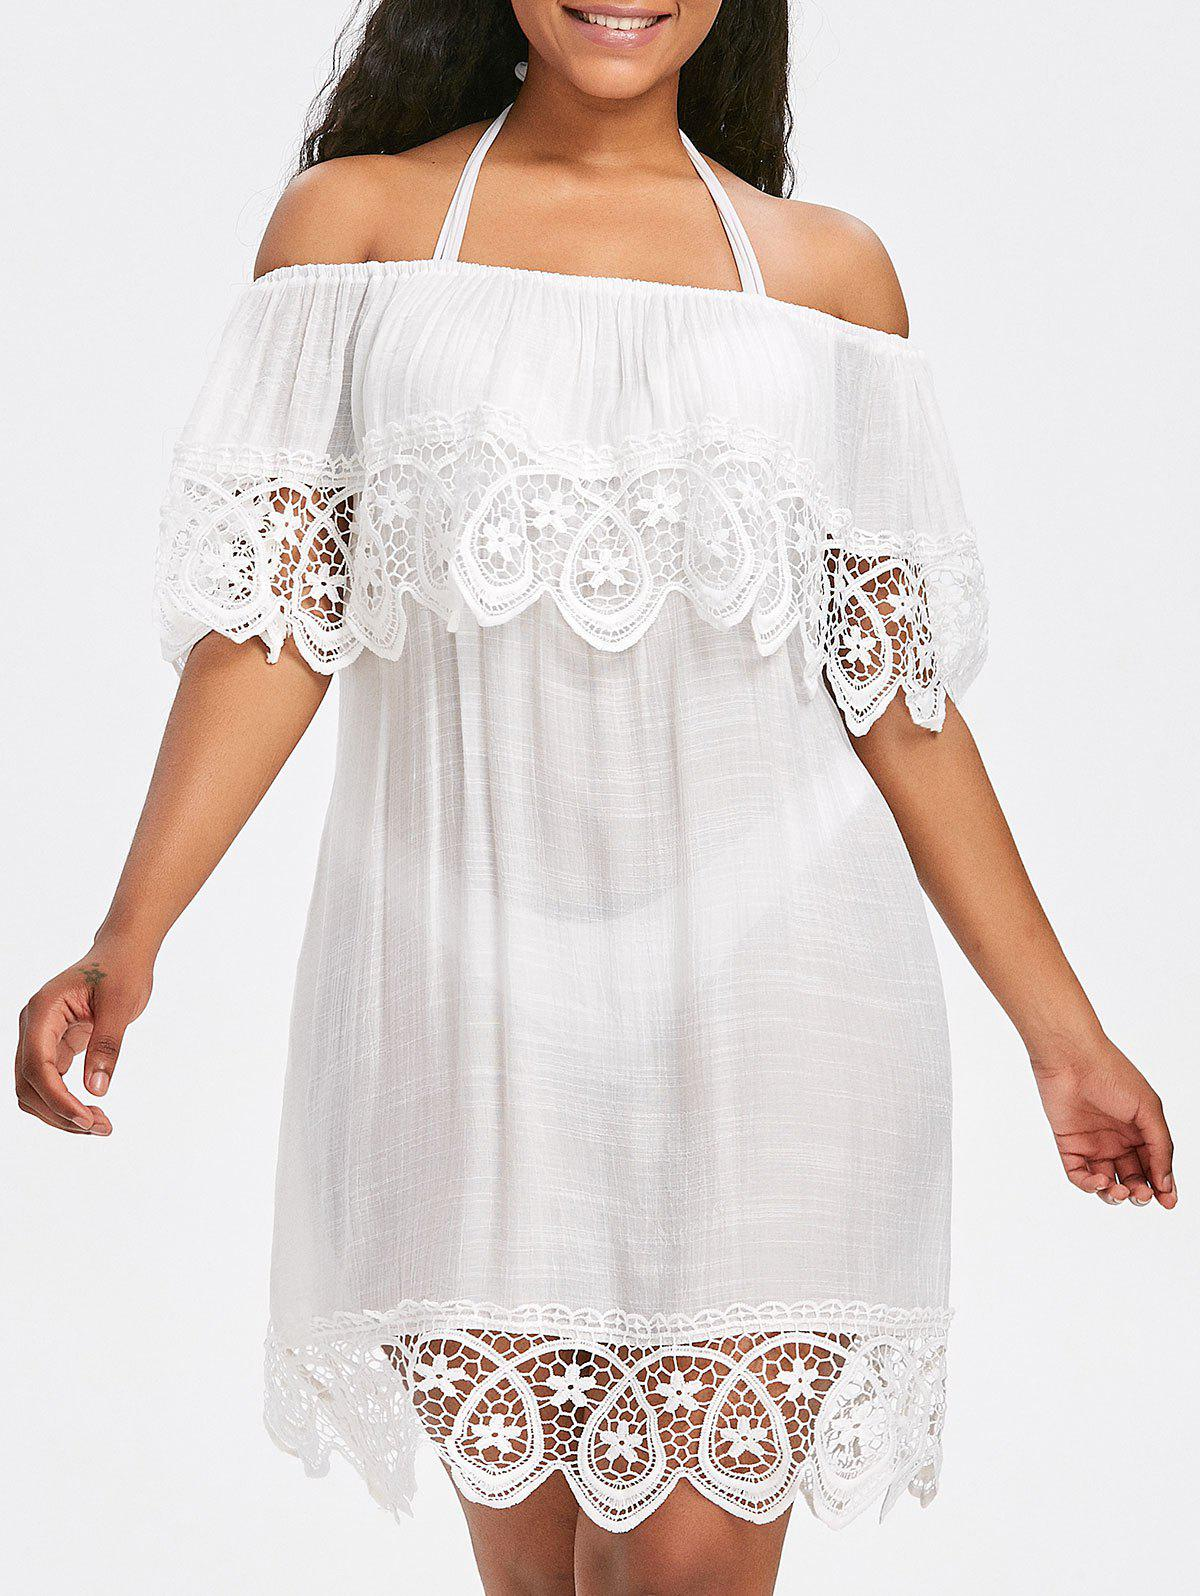 Lace Crochet Shift Beach Cover Up Dress - WHITE ONE SIZE